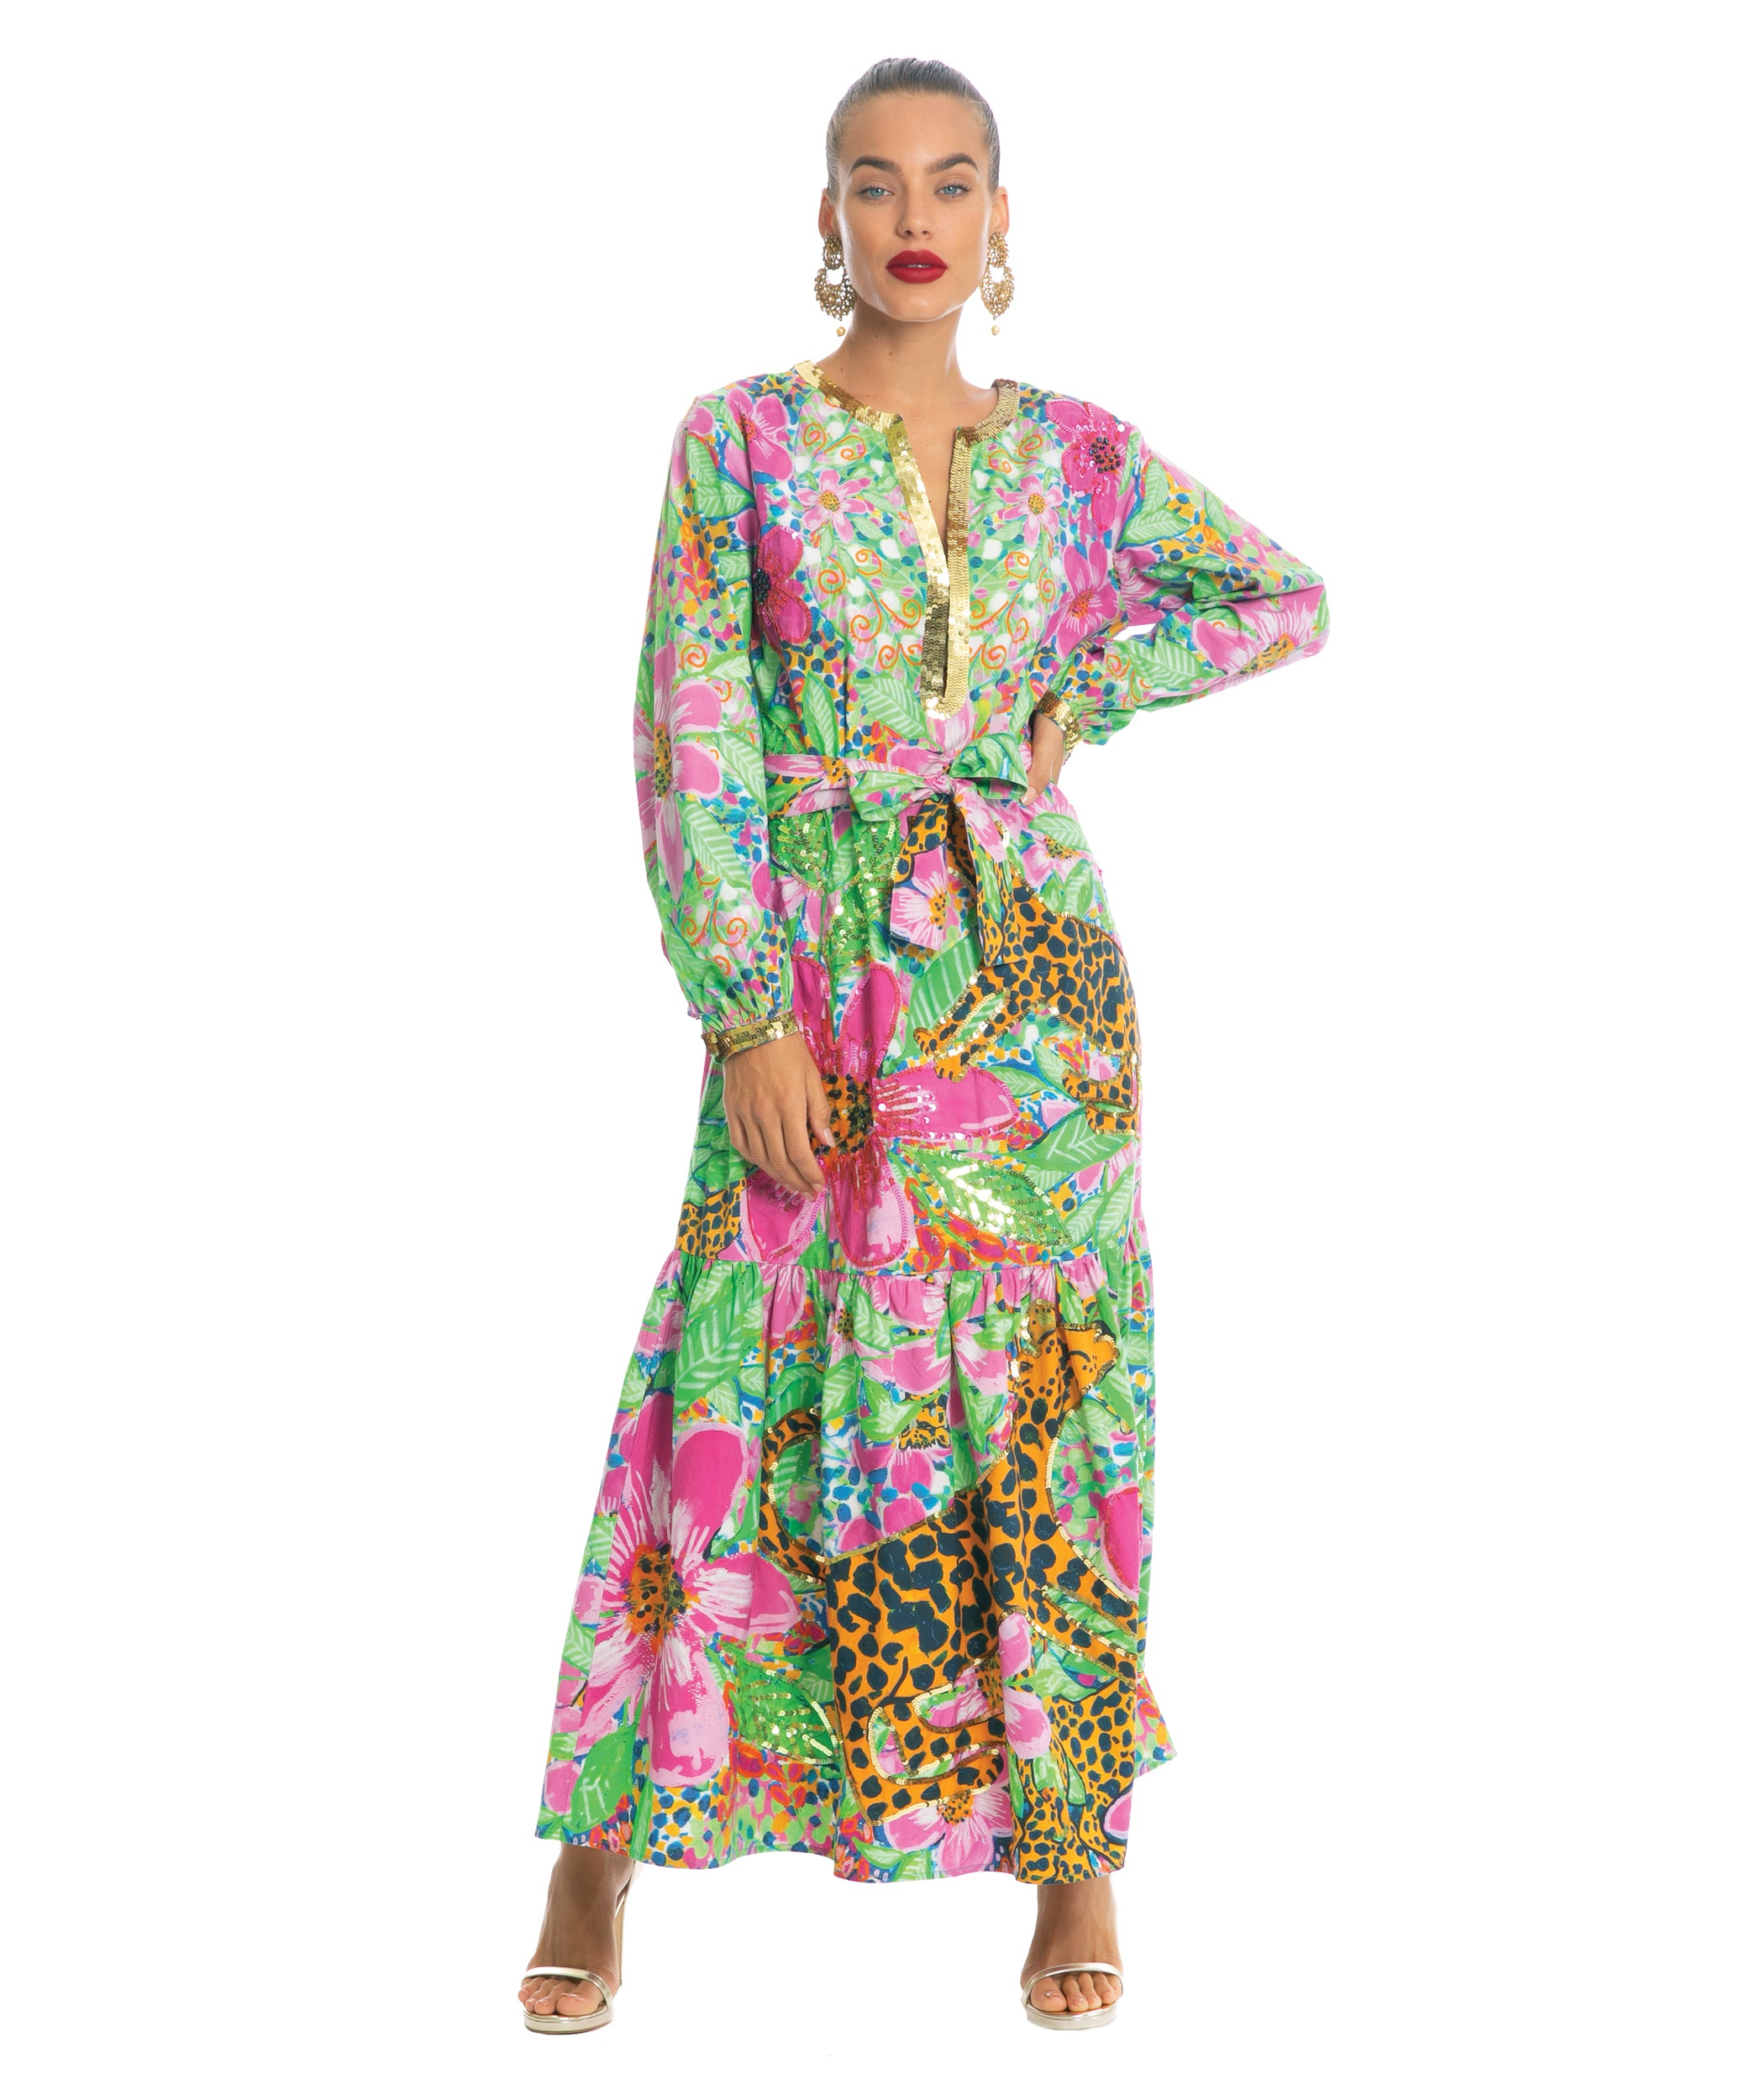 The Floral Cheetah Long Sleeved Dress by Bonita Kaftans